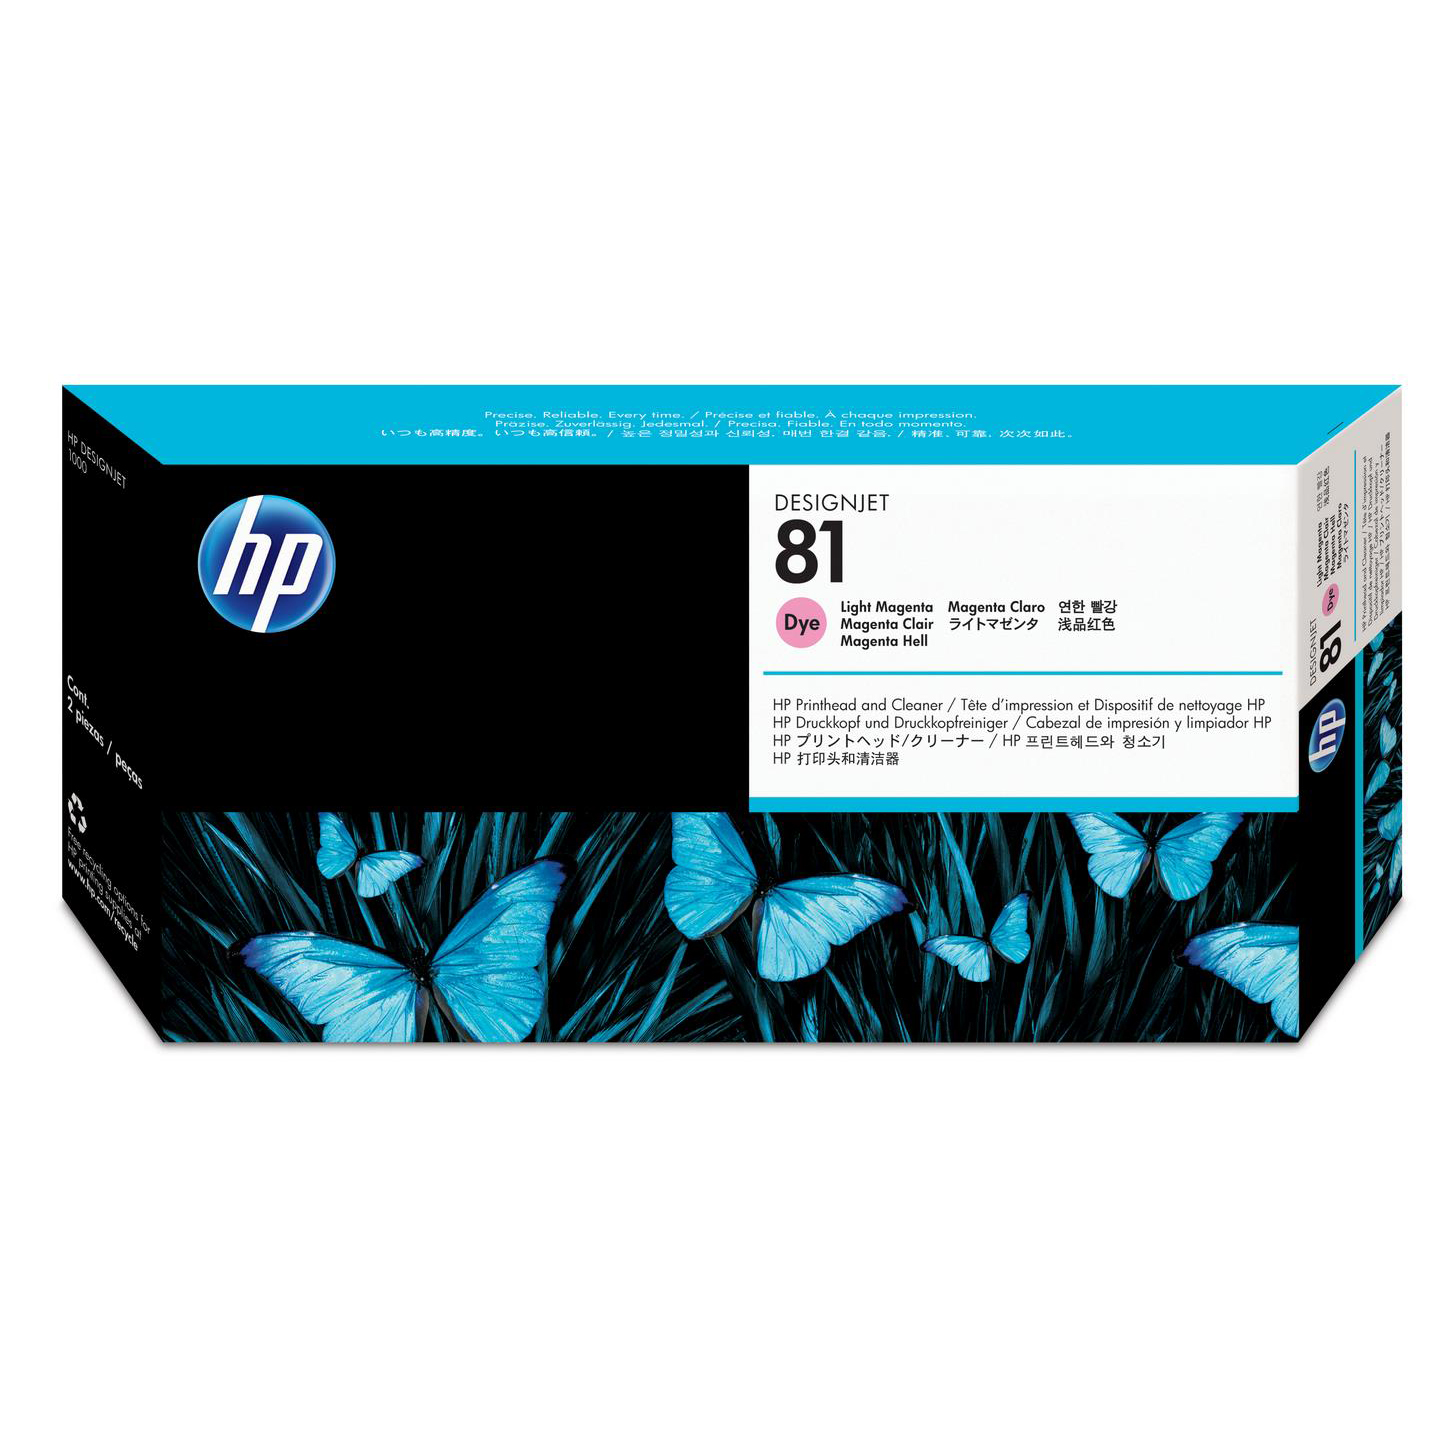 HP 81 LightMagenta Printhead & Printhead Cleaner for the 5000 & 5000PS Ref C4955A *3 to 5 Day Leadtime*